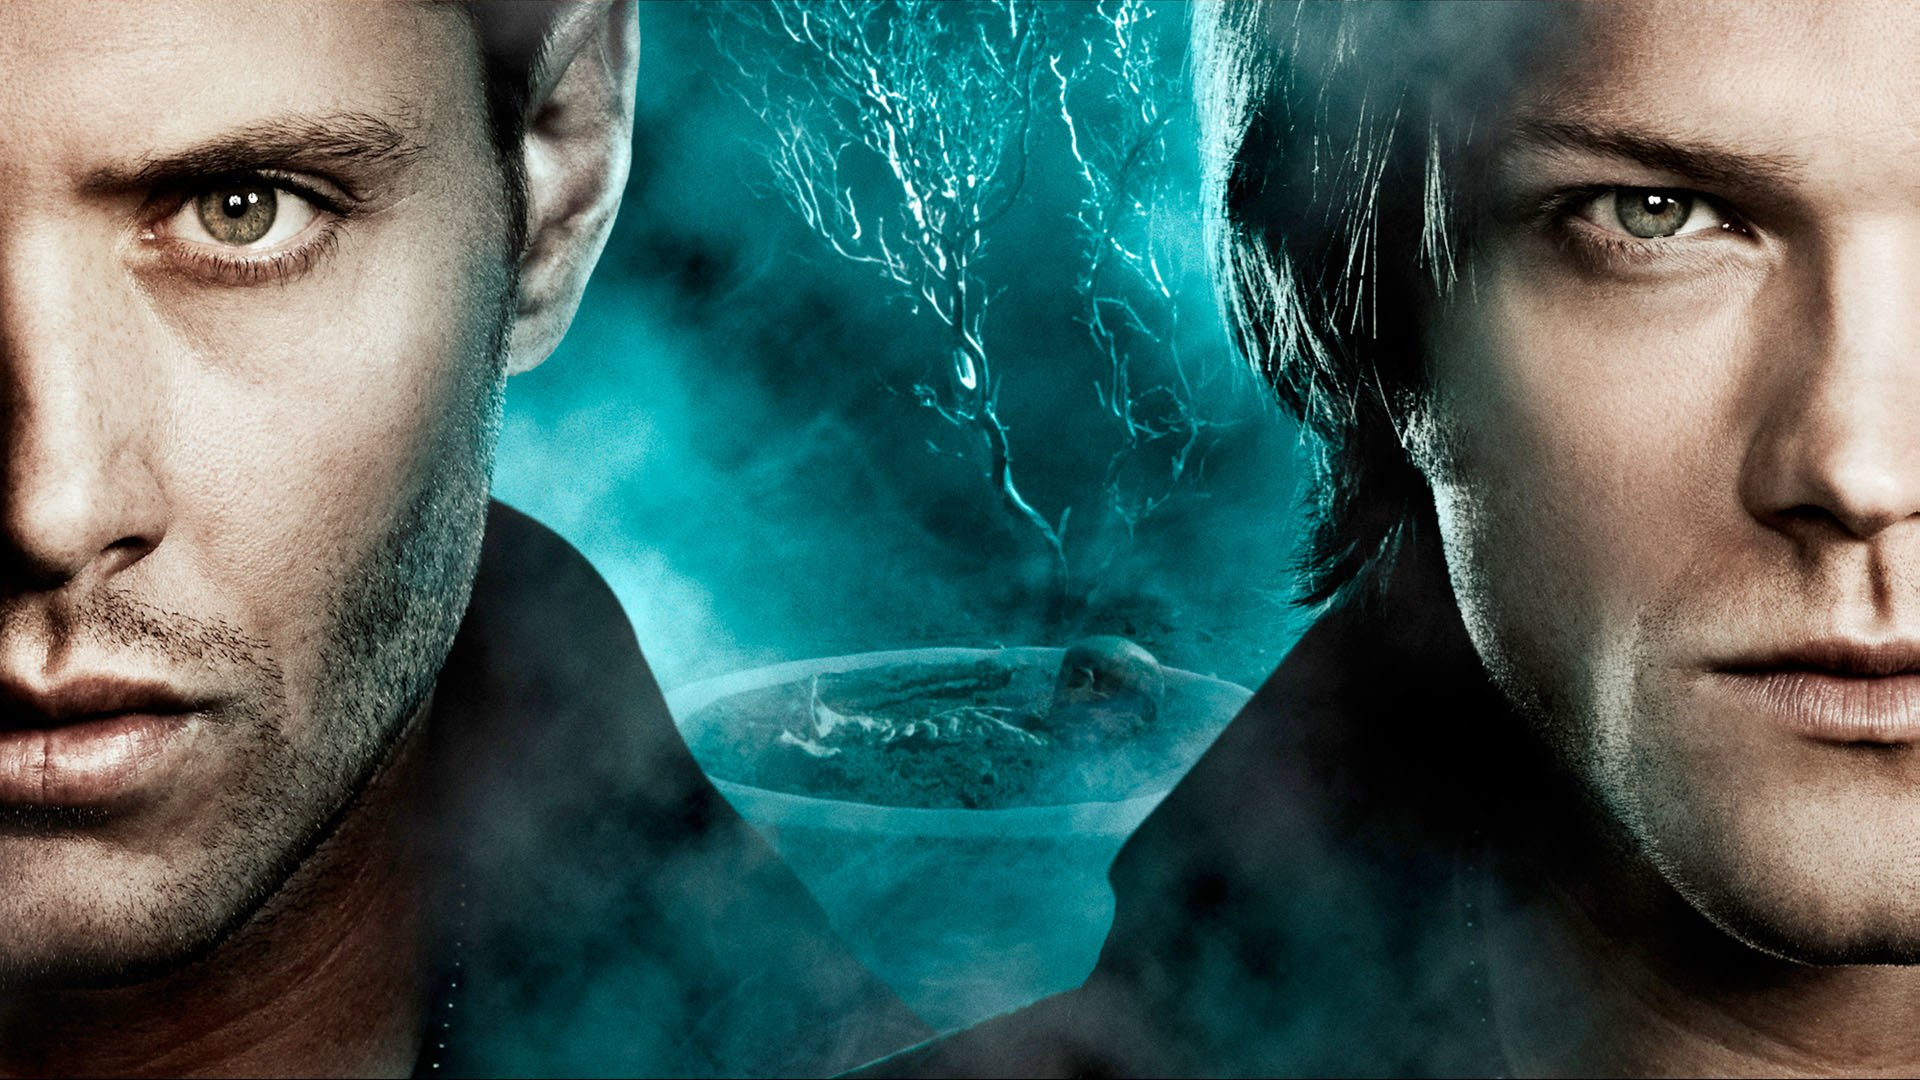 110 supernatural hd wallpapers background images wallpaper abyss hd wallpaper background image id563087 voltagebd Image collections